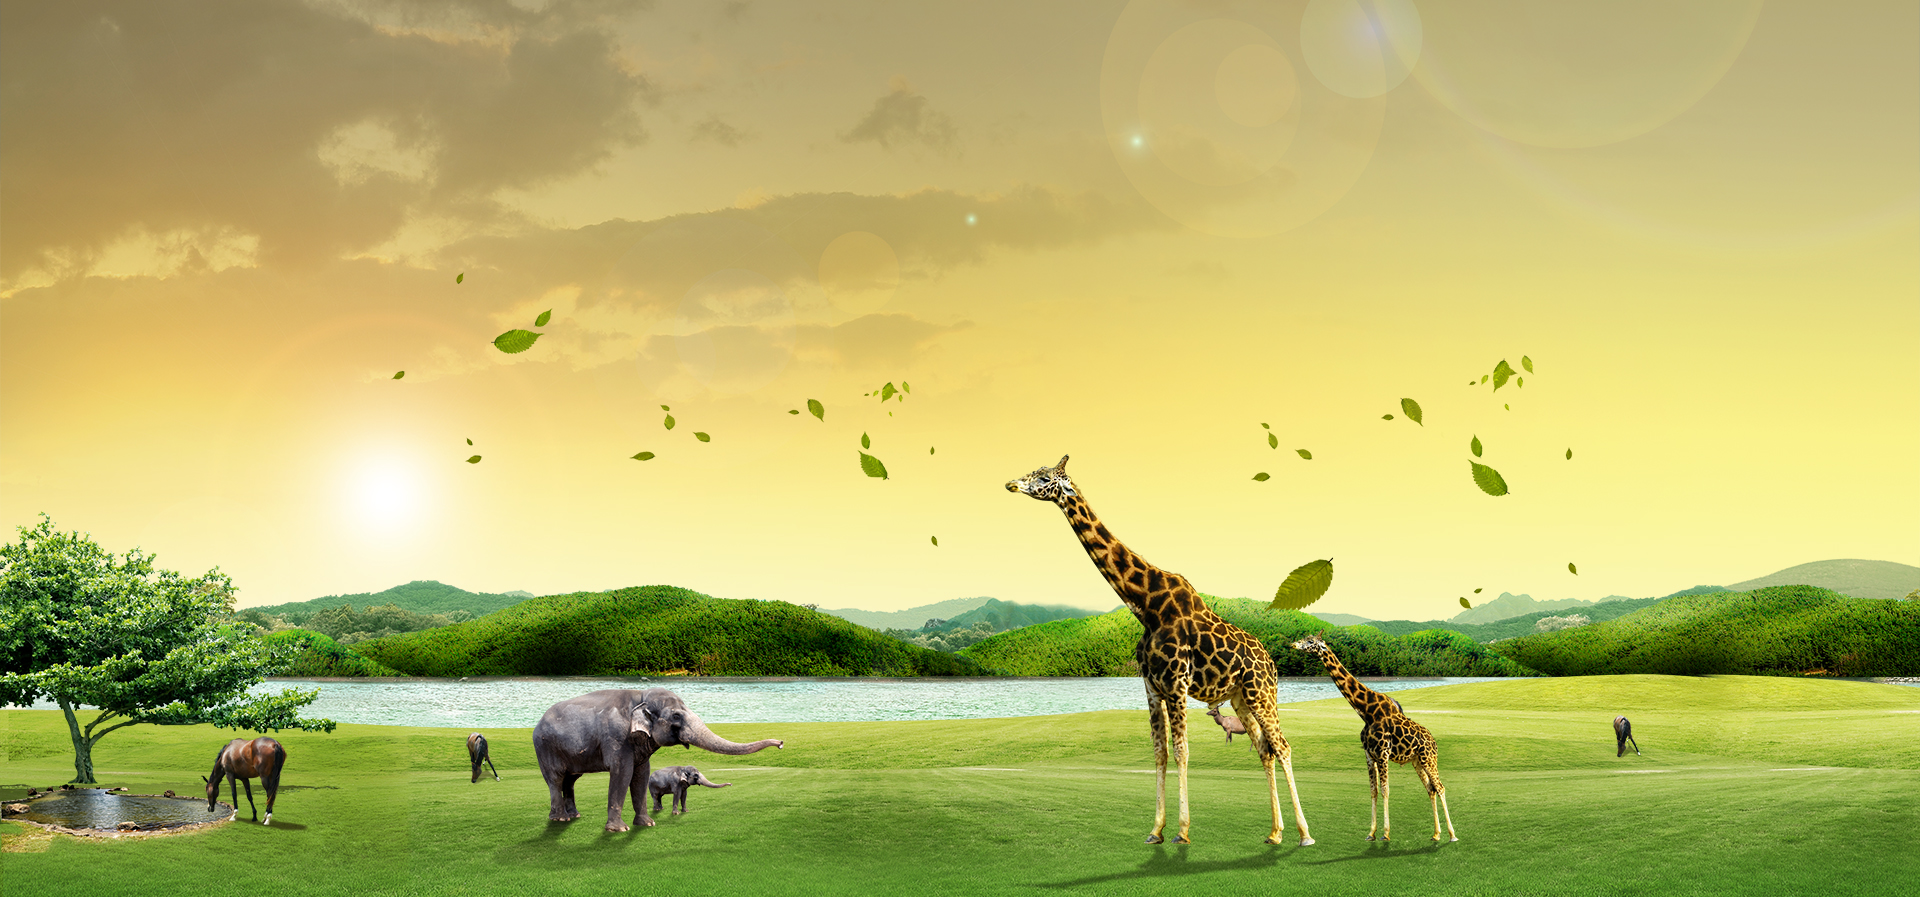 zoo posters  animals  water  trees background image for free download